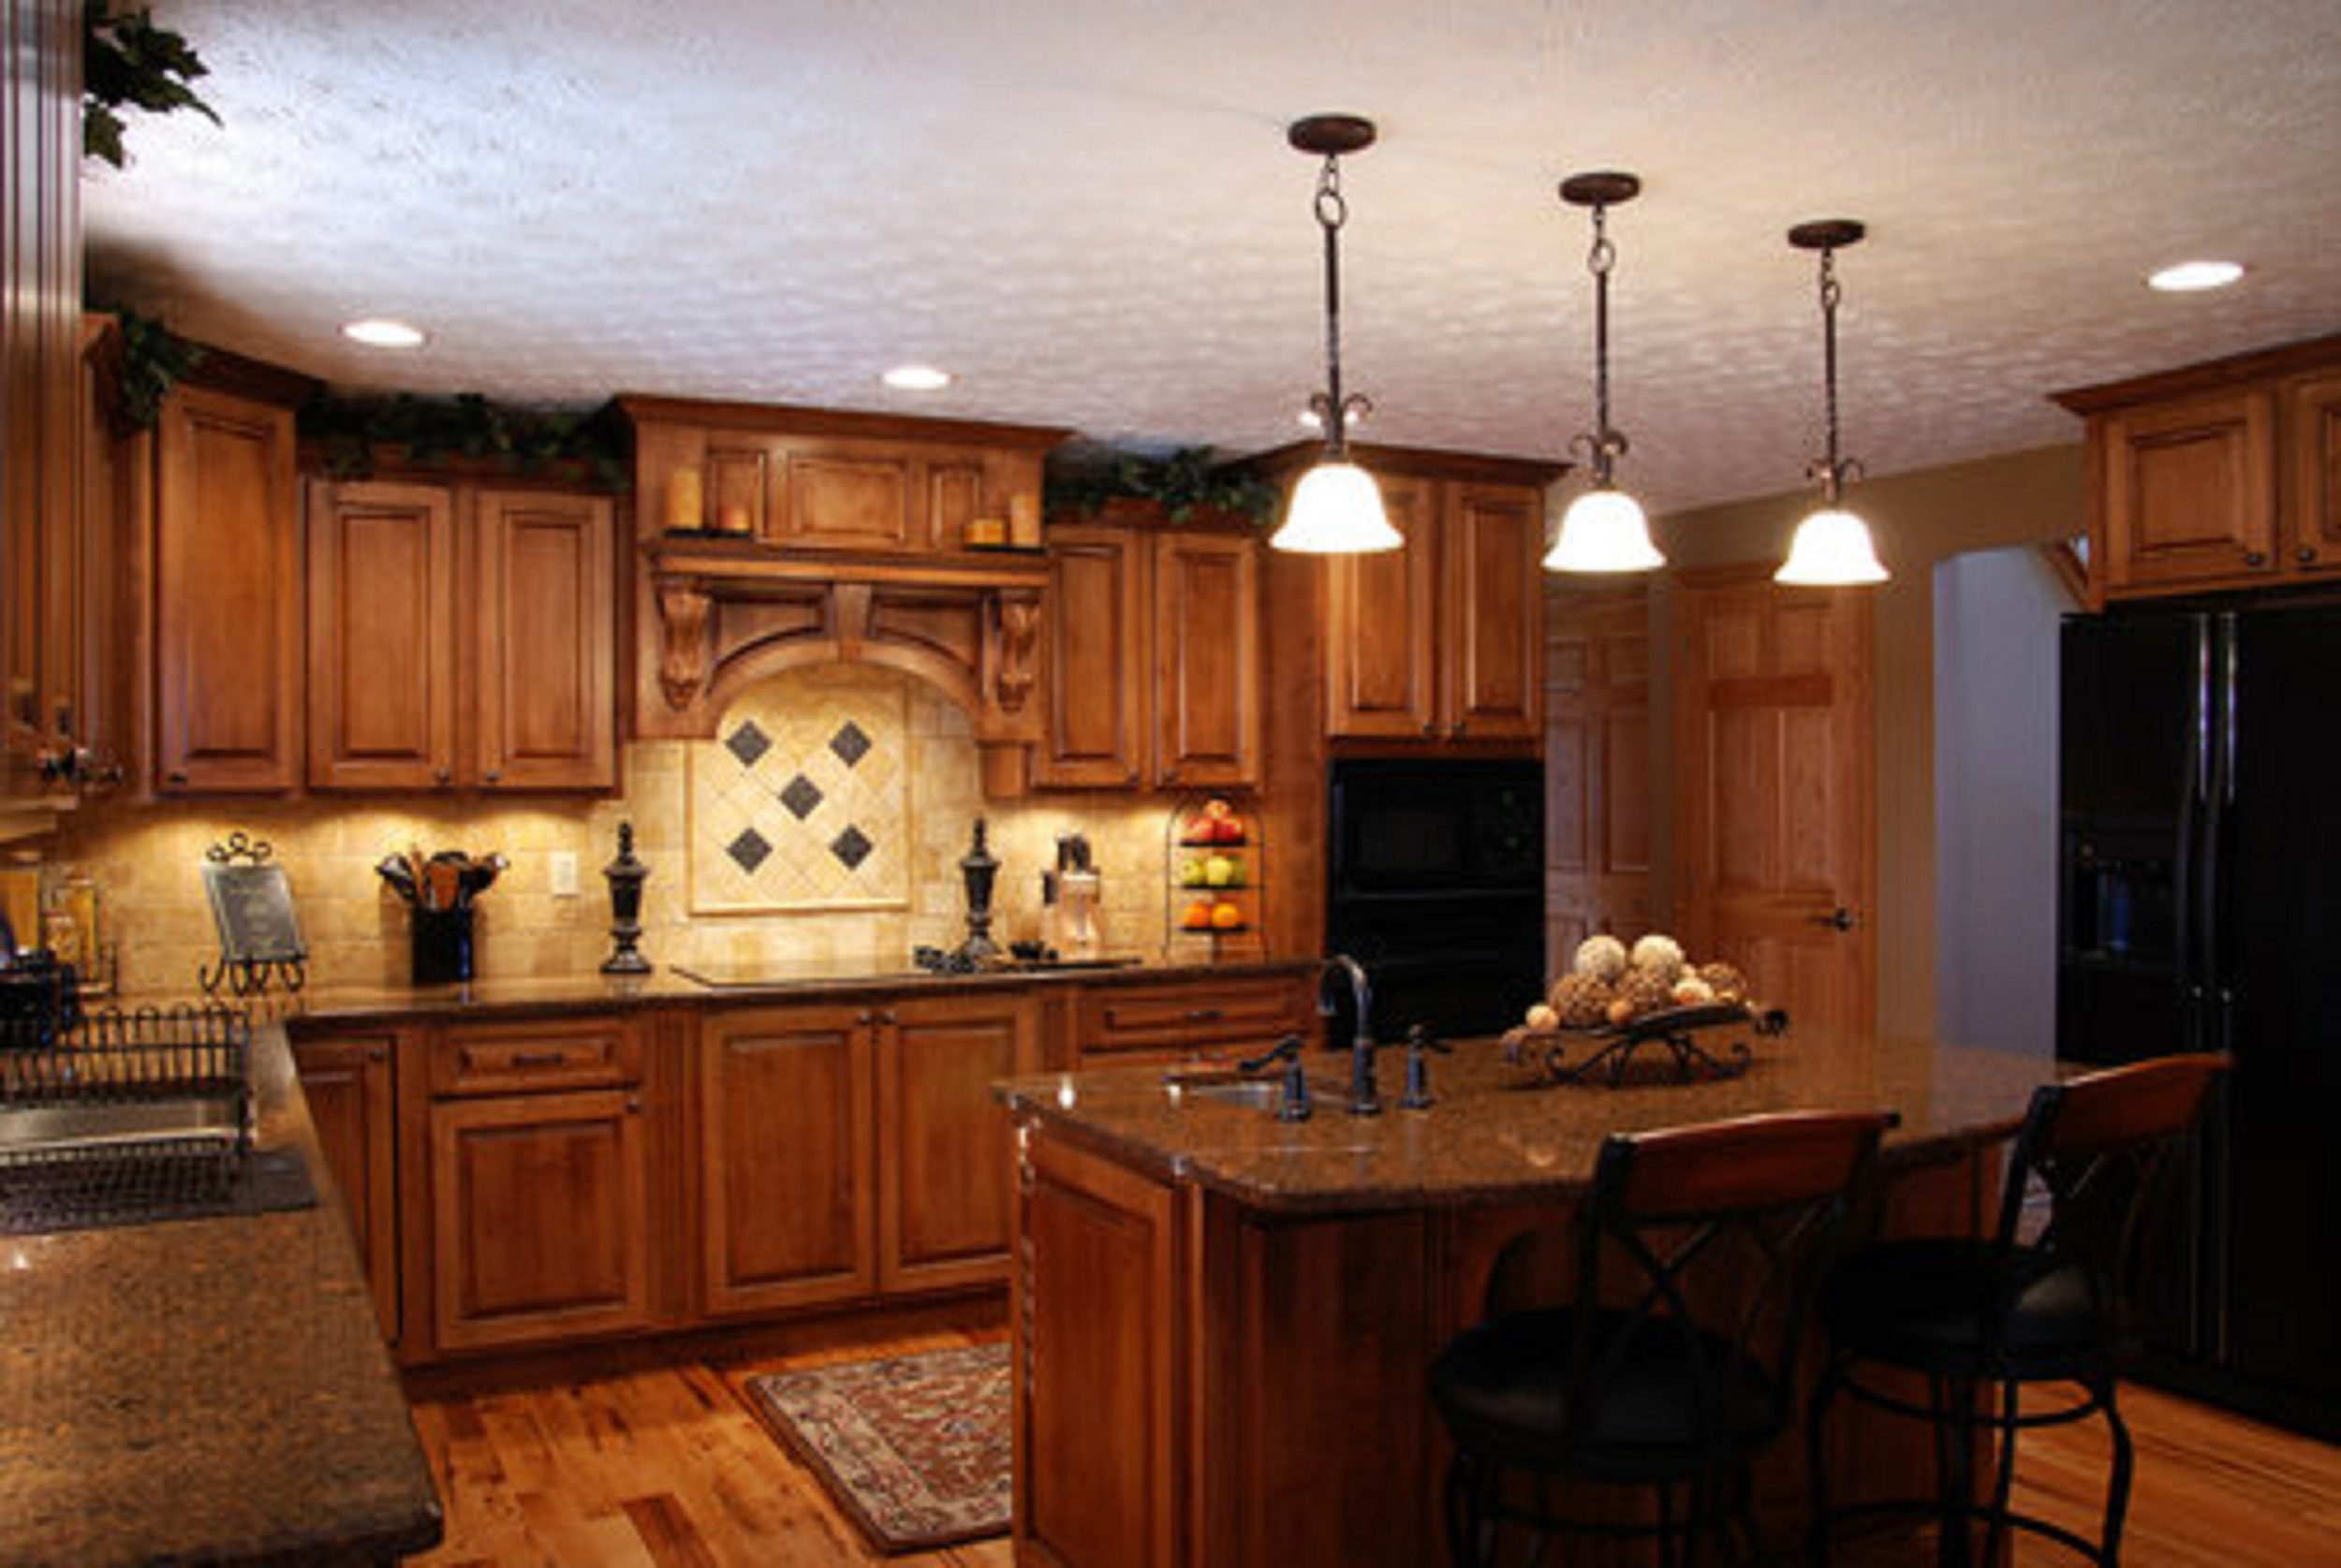 resize kitchen2.jpg